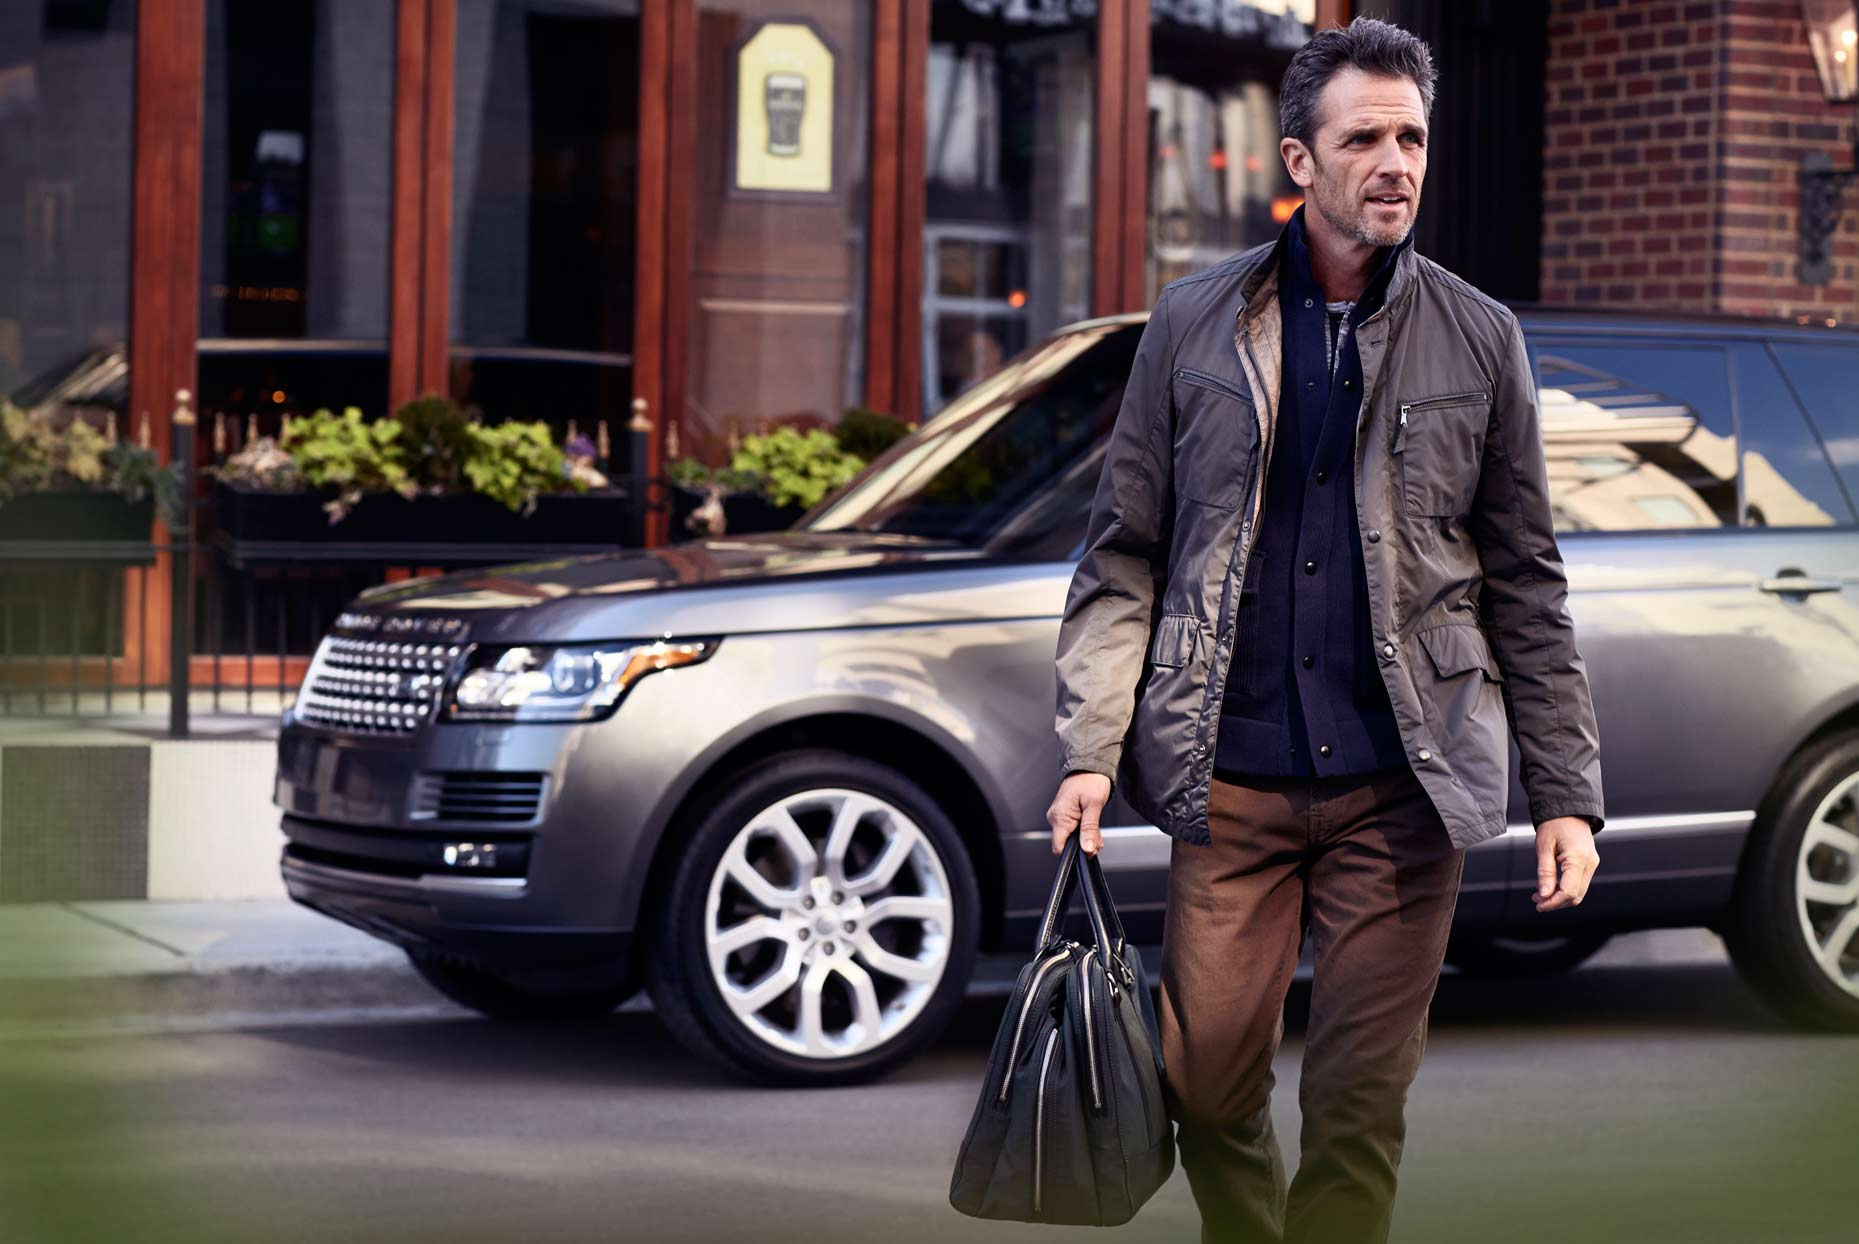 Mark DeLong - Commercial Photography - Well dressed middle aged man walking away from SUV carrying a satchel.